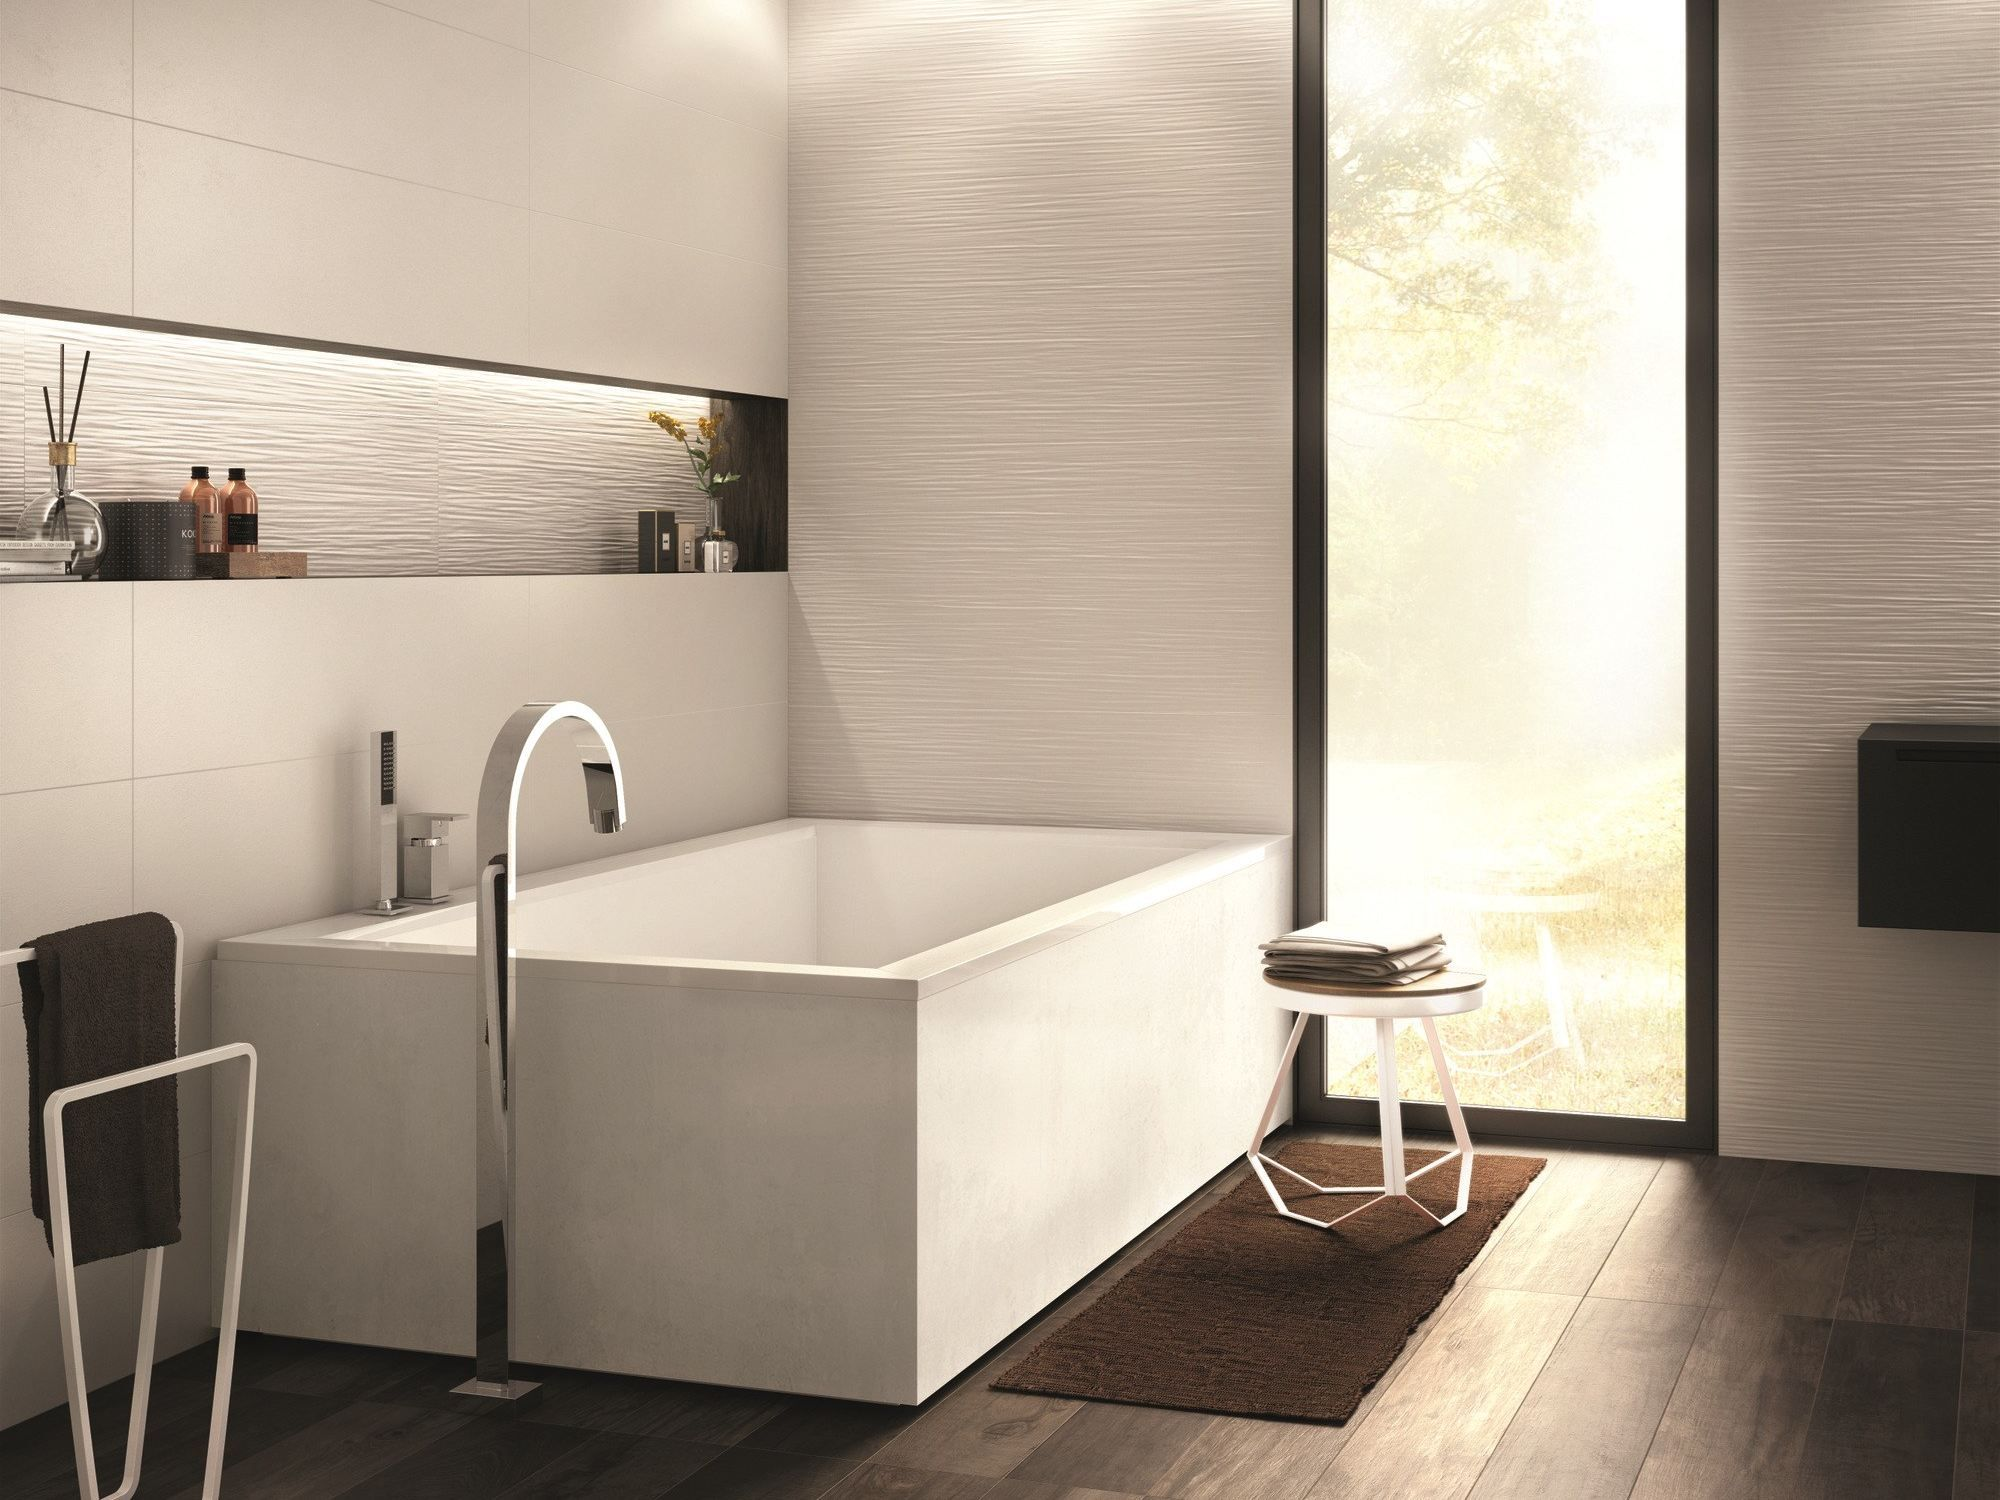 Revestimiento Paredes Baño Revestimiento De Pared De Wall Andporcelain Do Up Touch By